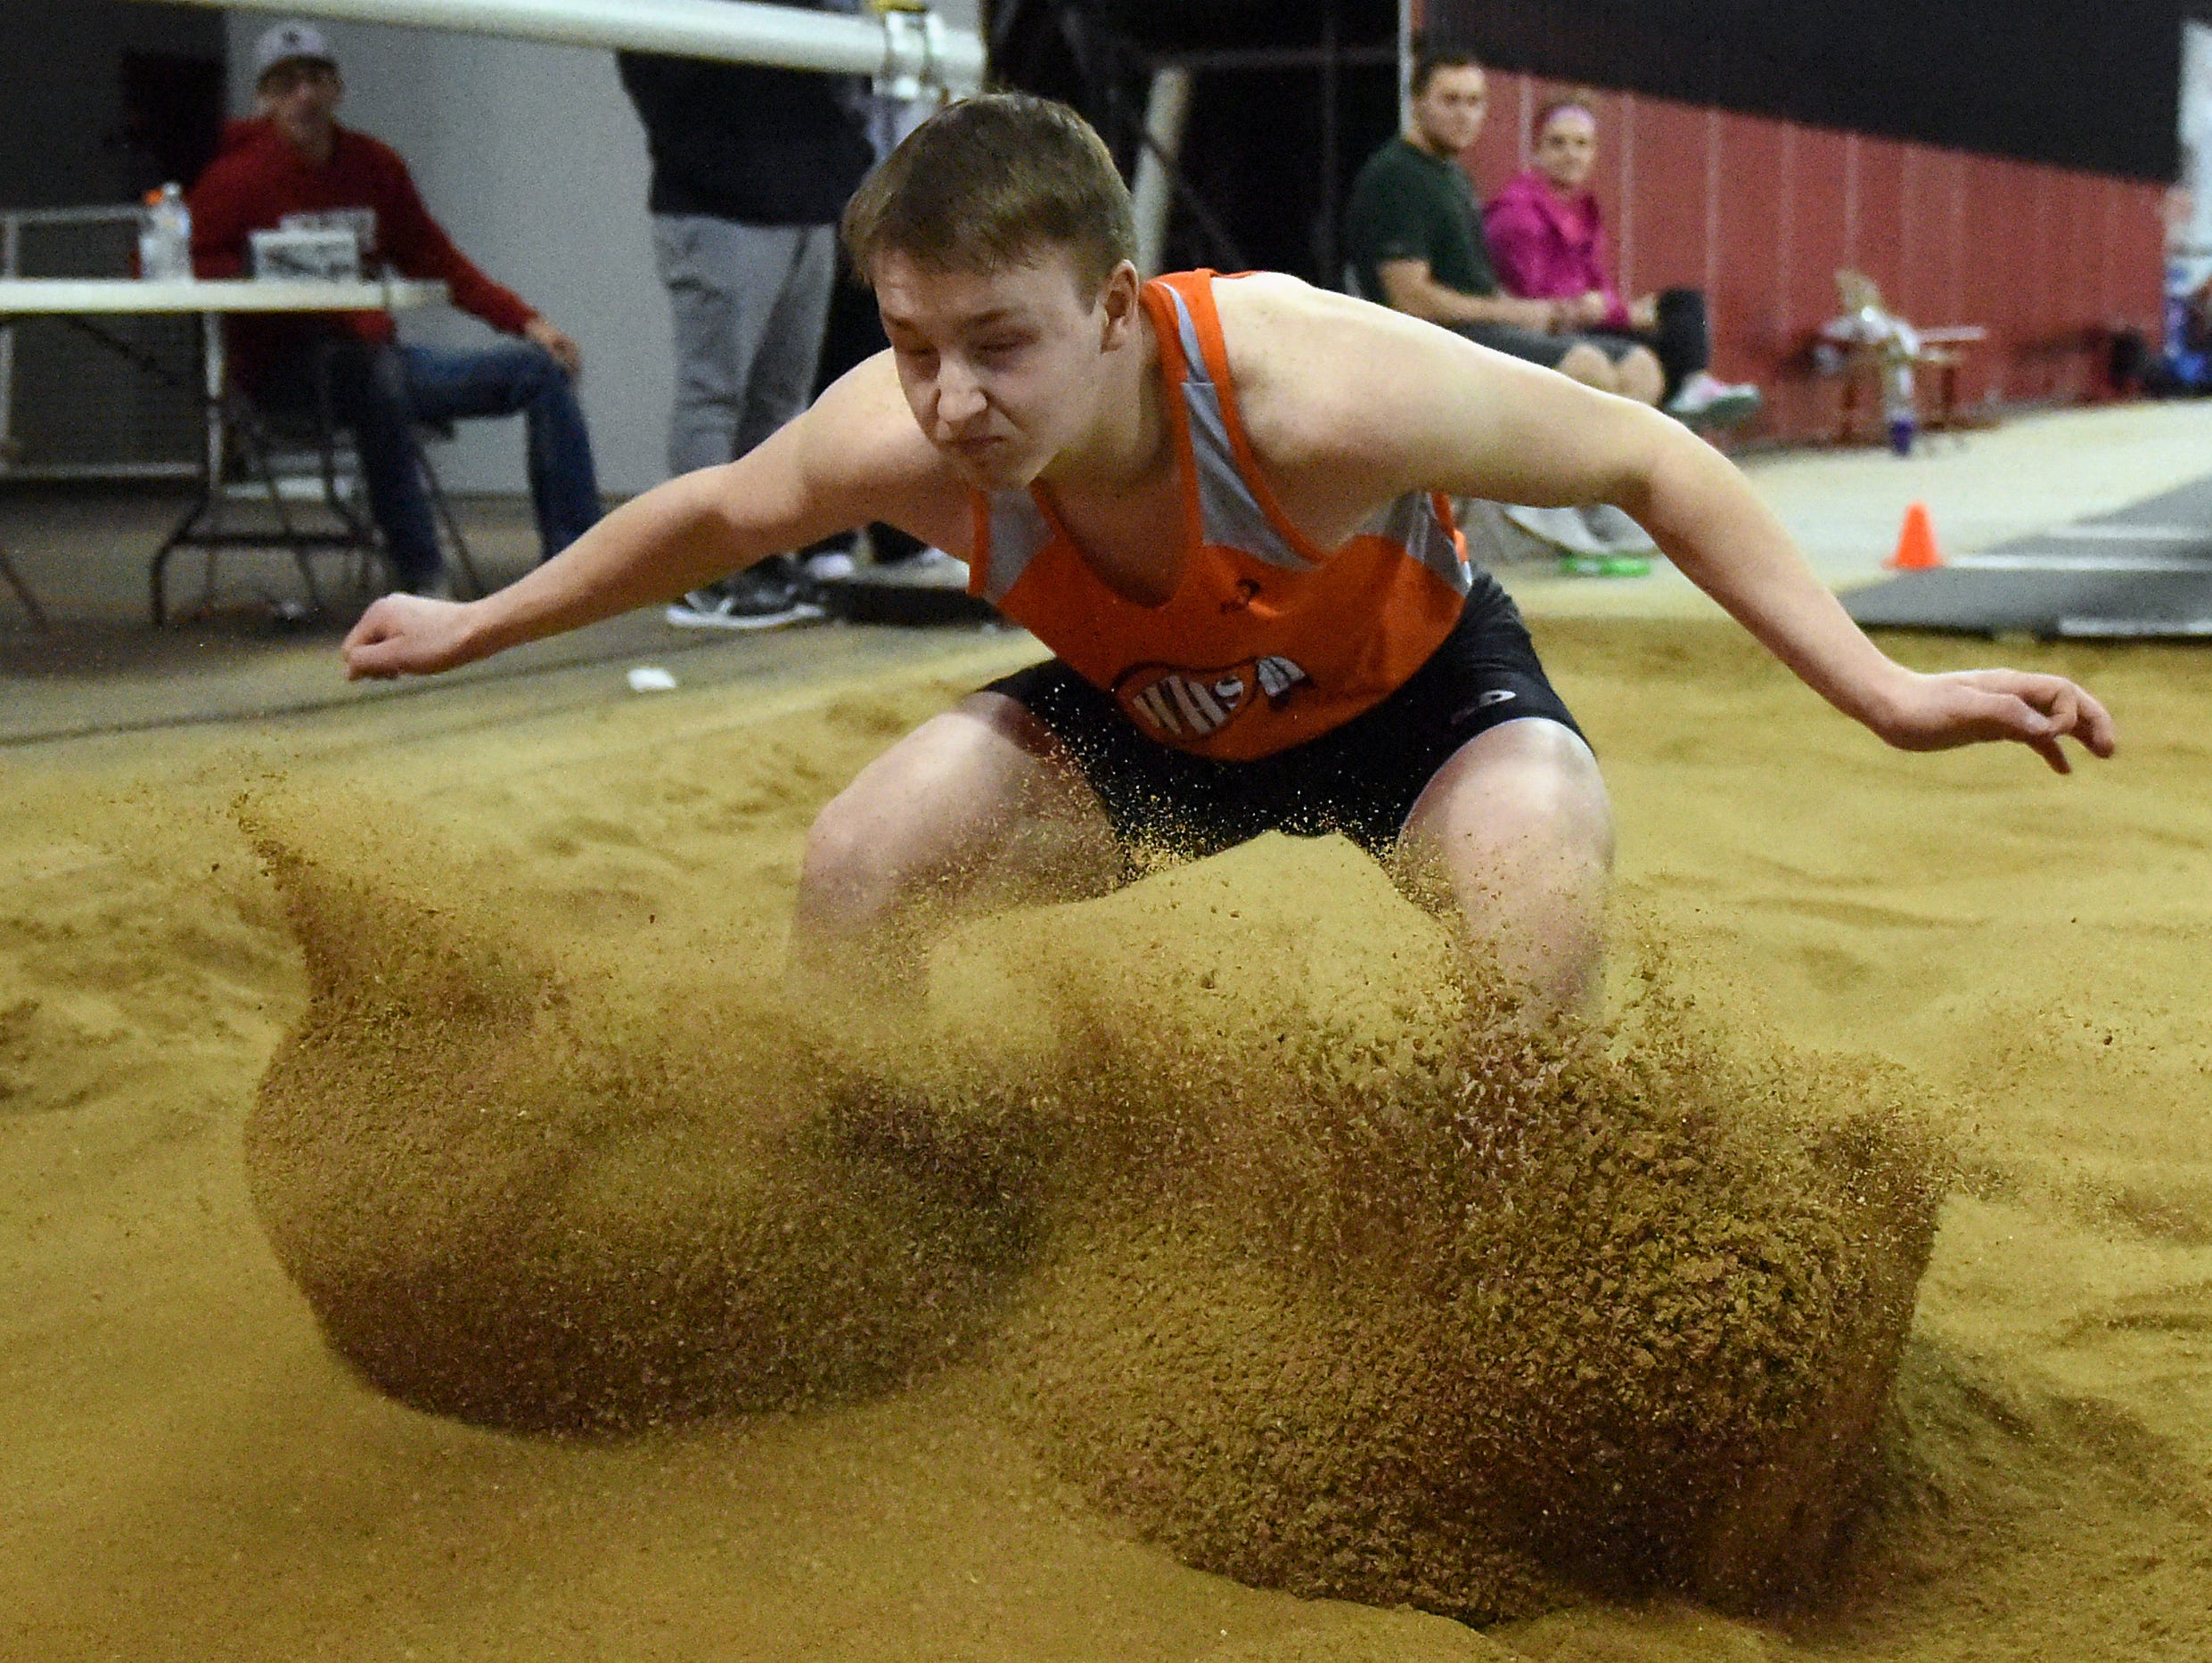 Washington's Nate Freese competes in the boys long jump during the Dan Lennon Invitational at the DakotaDome in Vermillion on Monday, March 28, 2016.